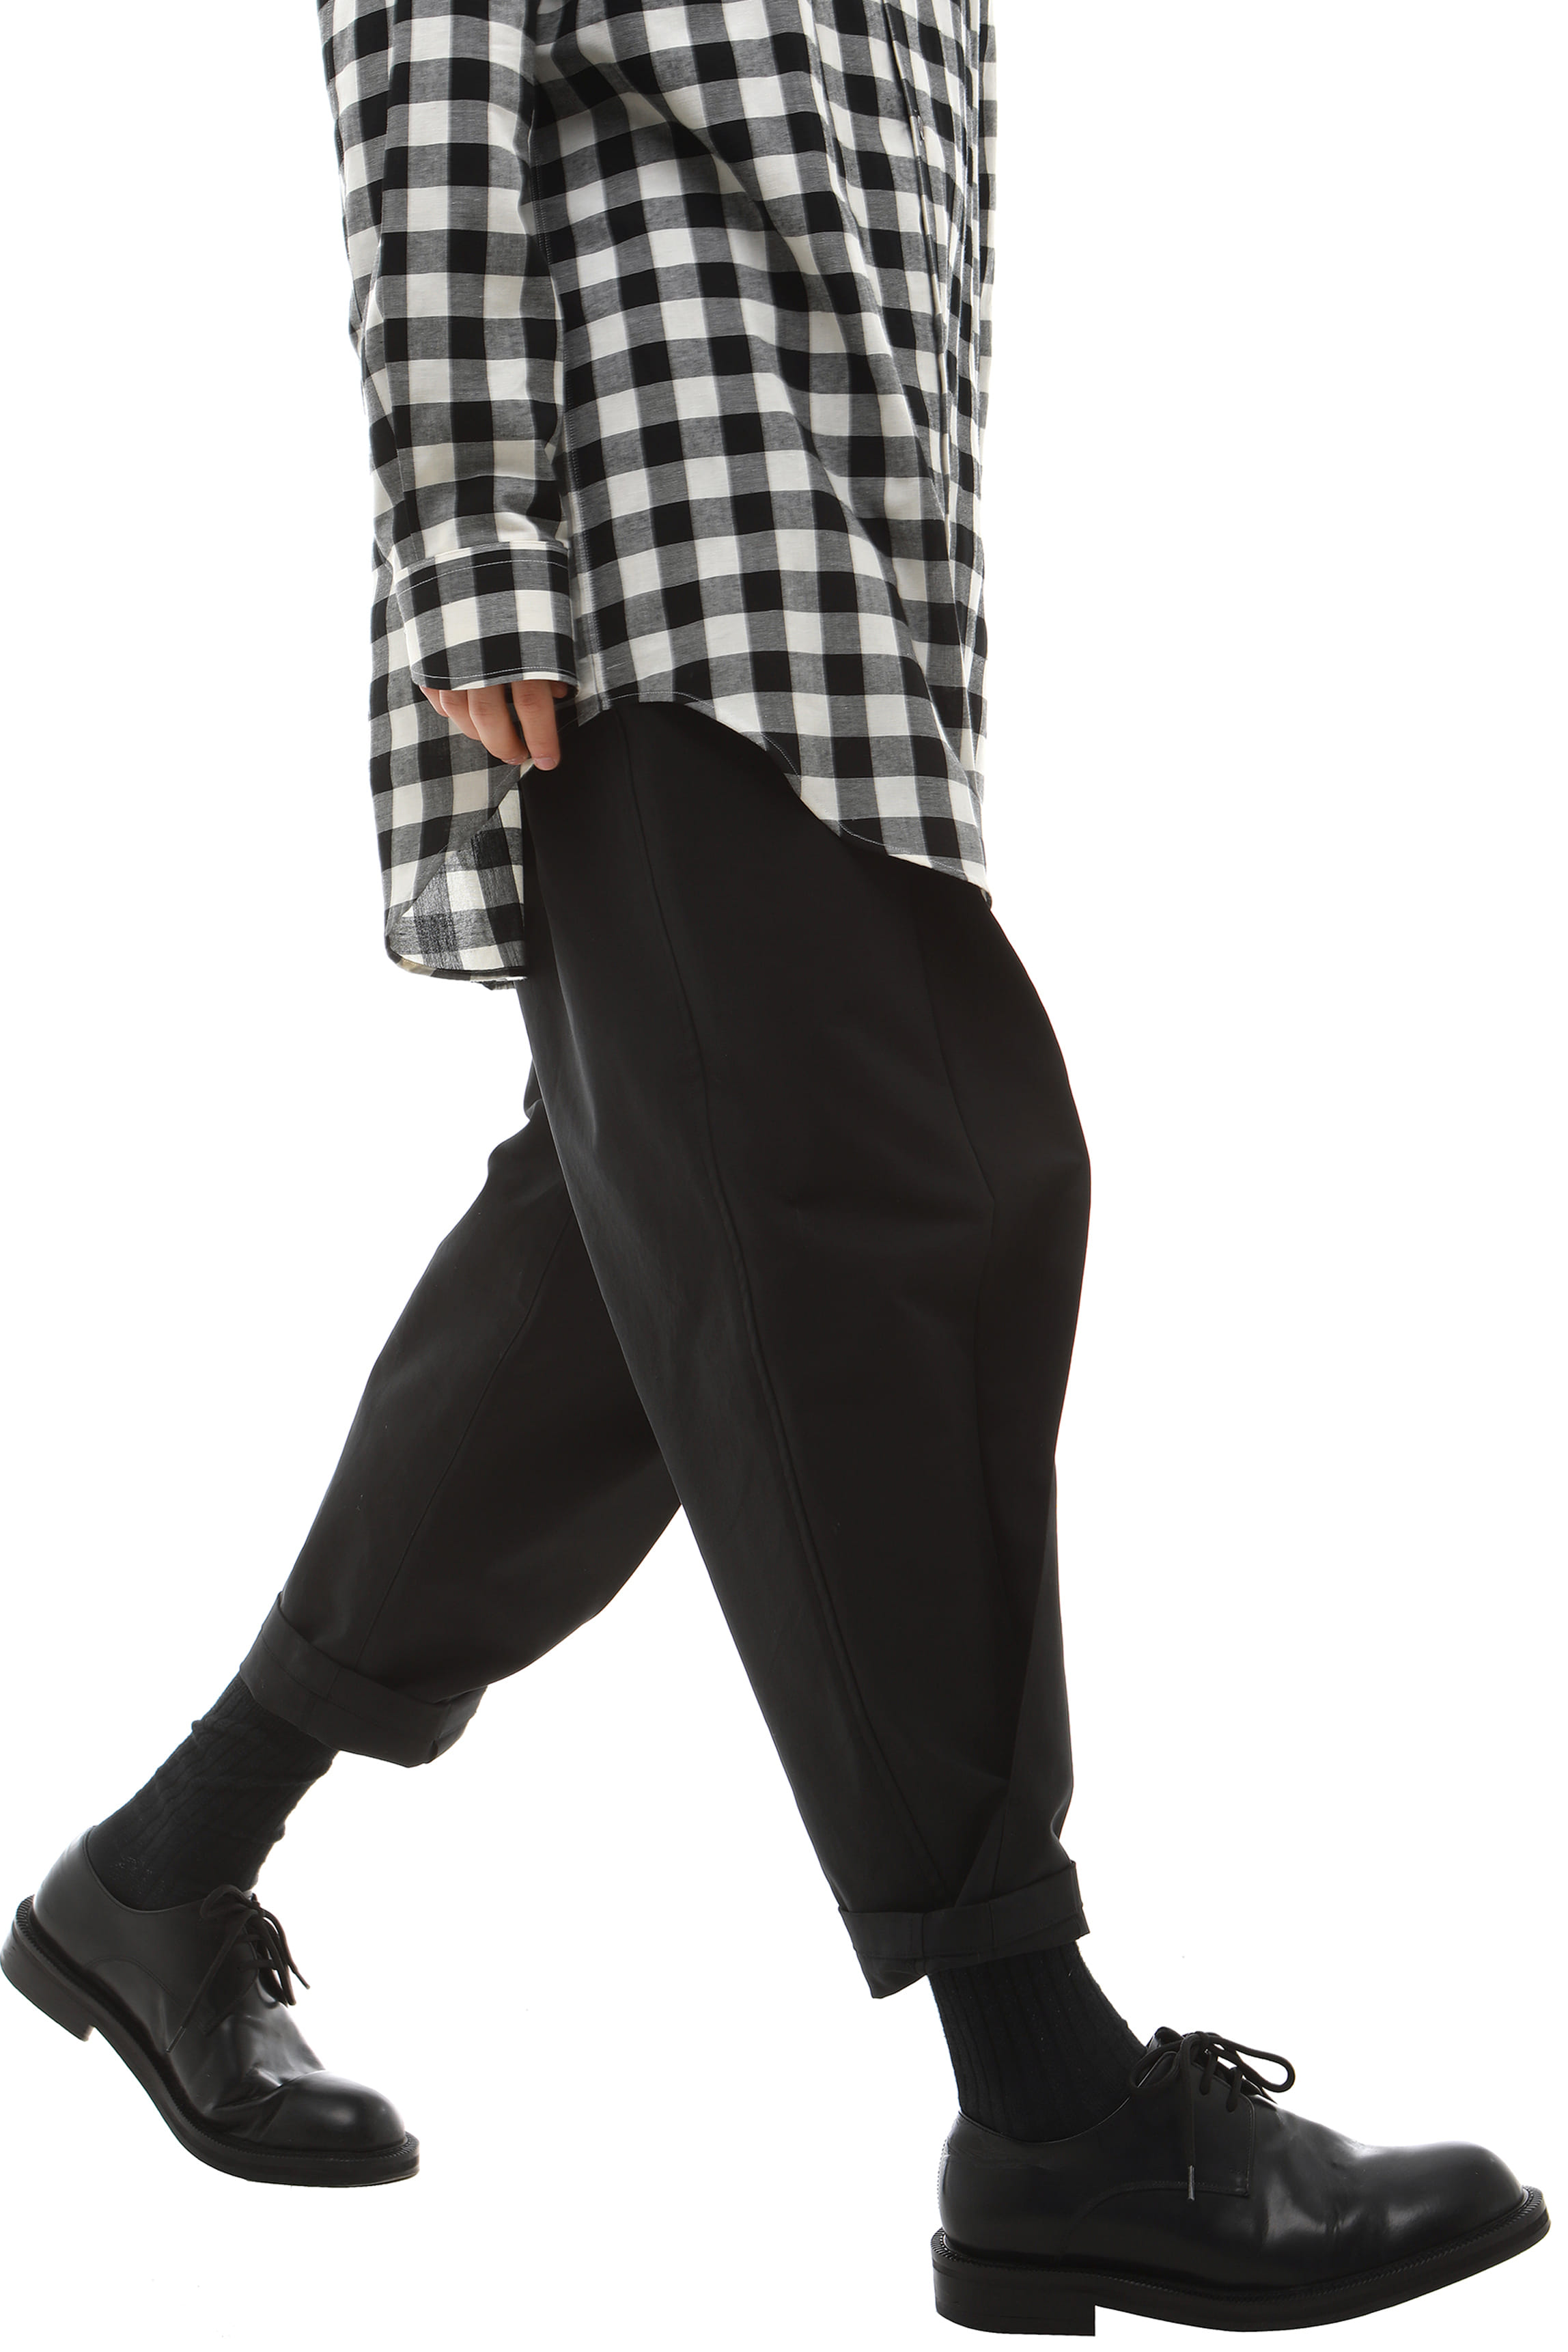 P014 / Structural Black Tapered Pants